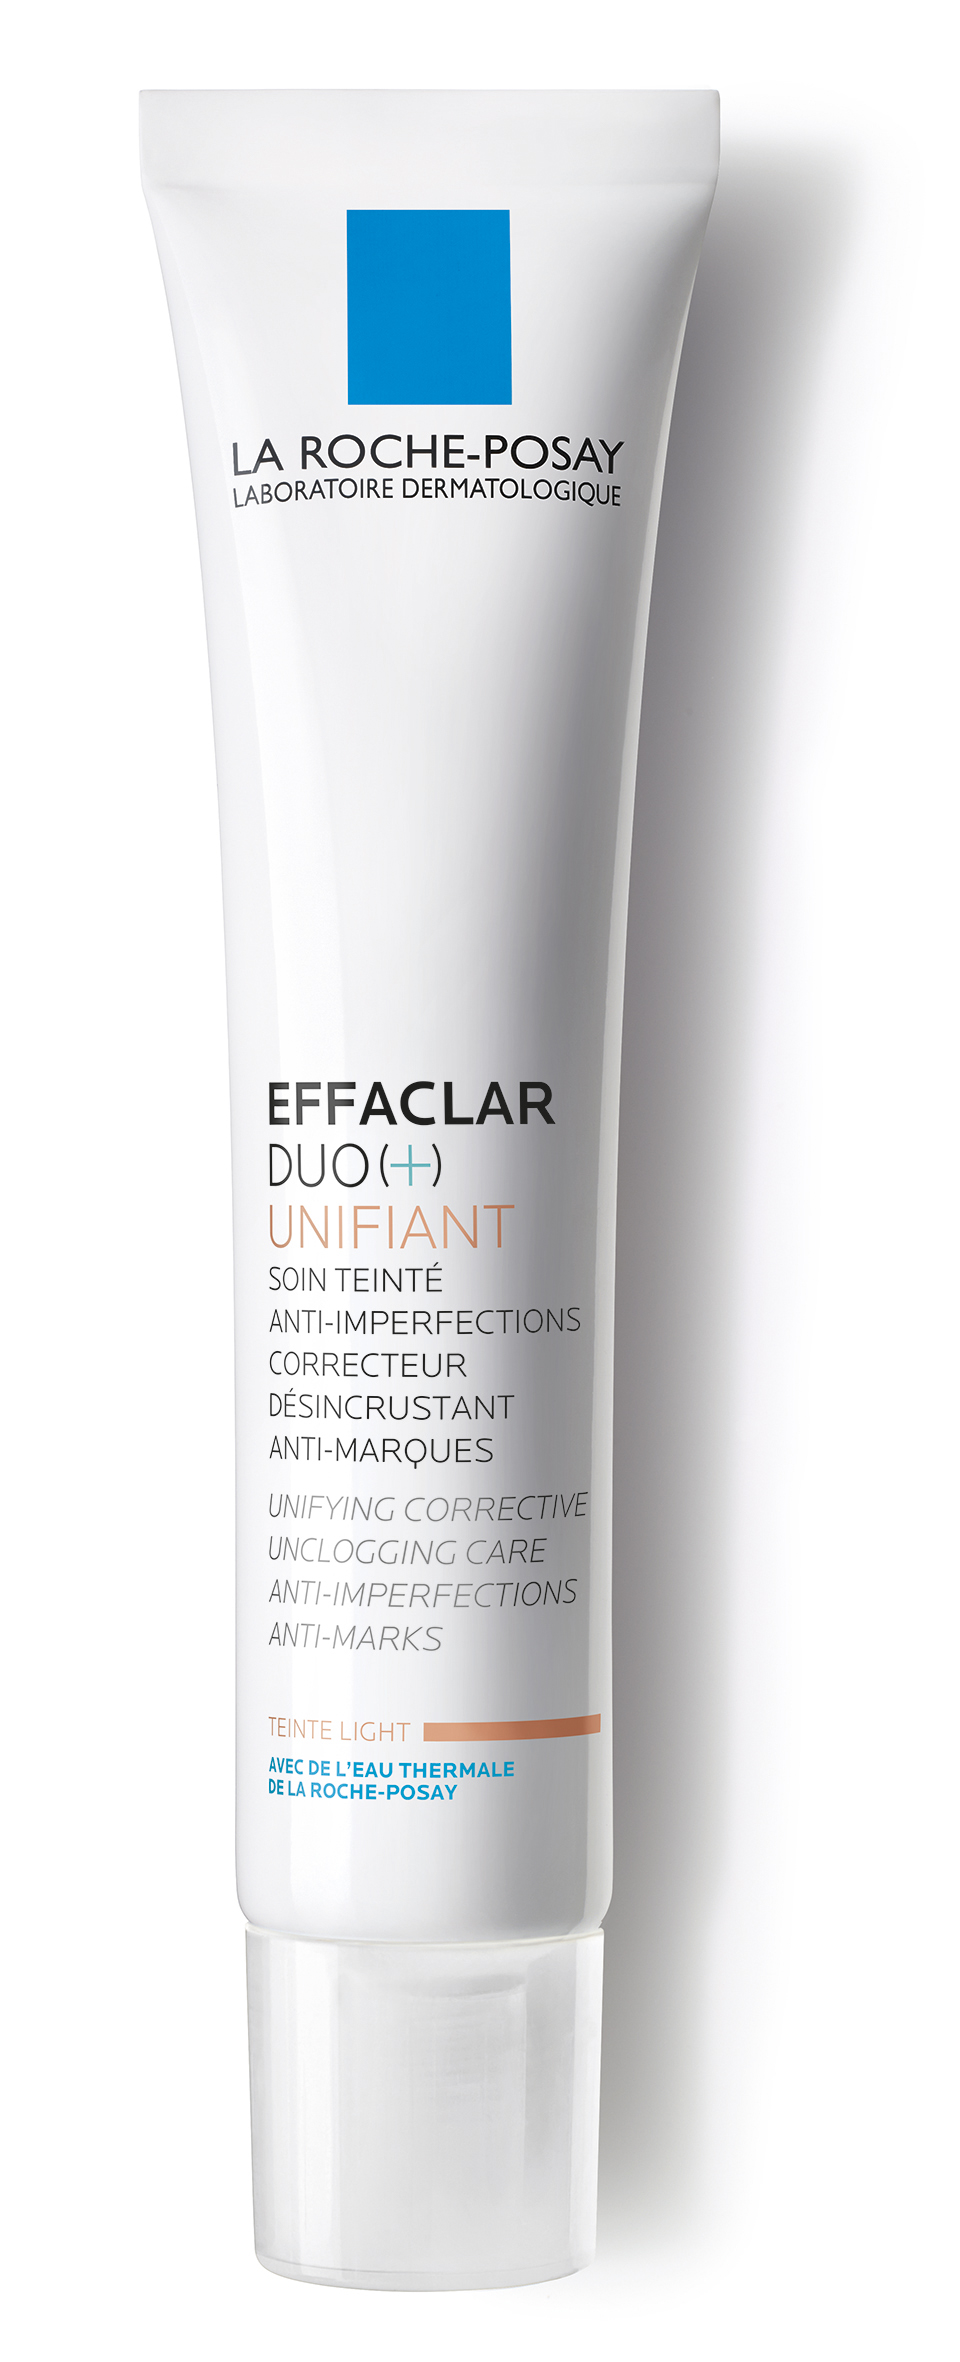 La Roche-Posay Effaclar Duo(+) Unifiant Light Shade 40Ml